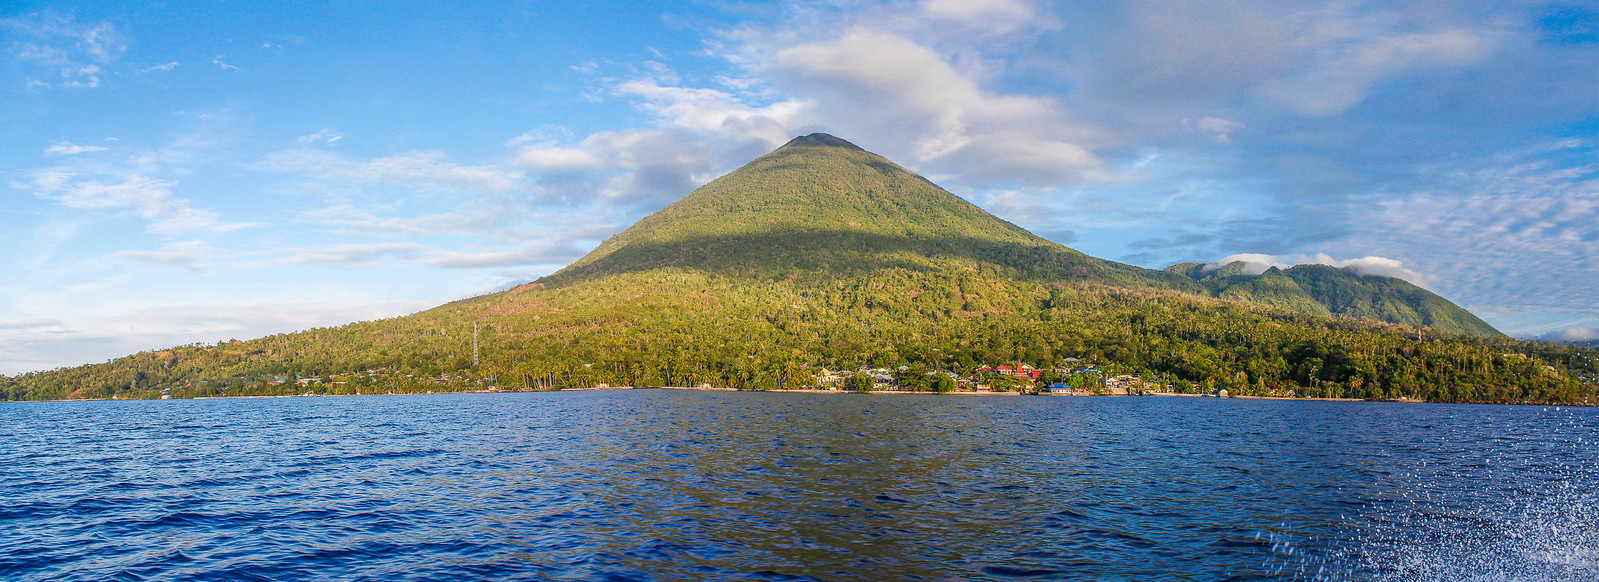 Tidore island from the sea